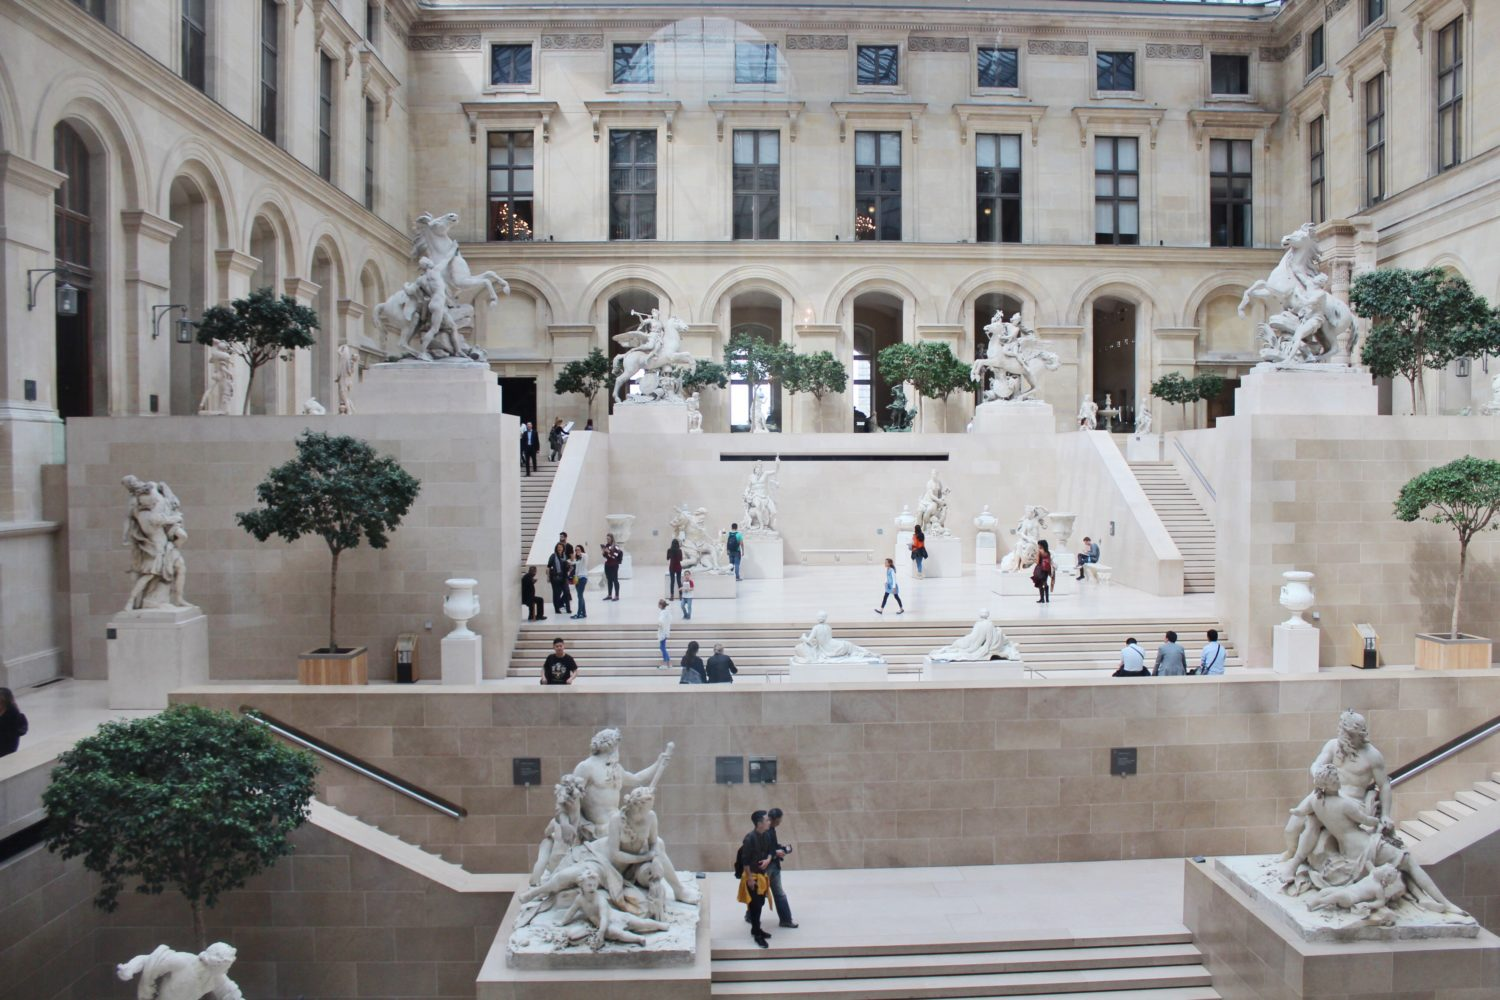 The Louvre Sculpture Garden